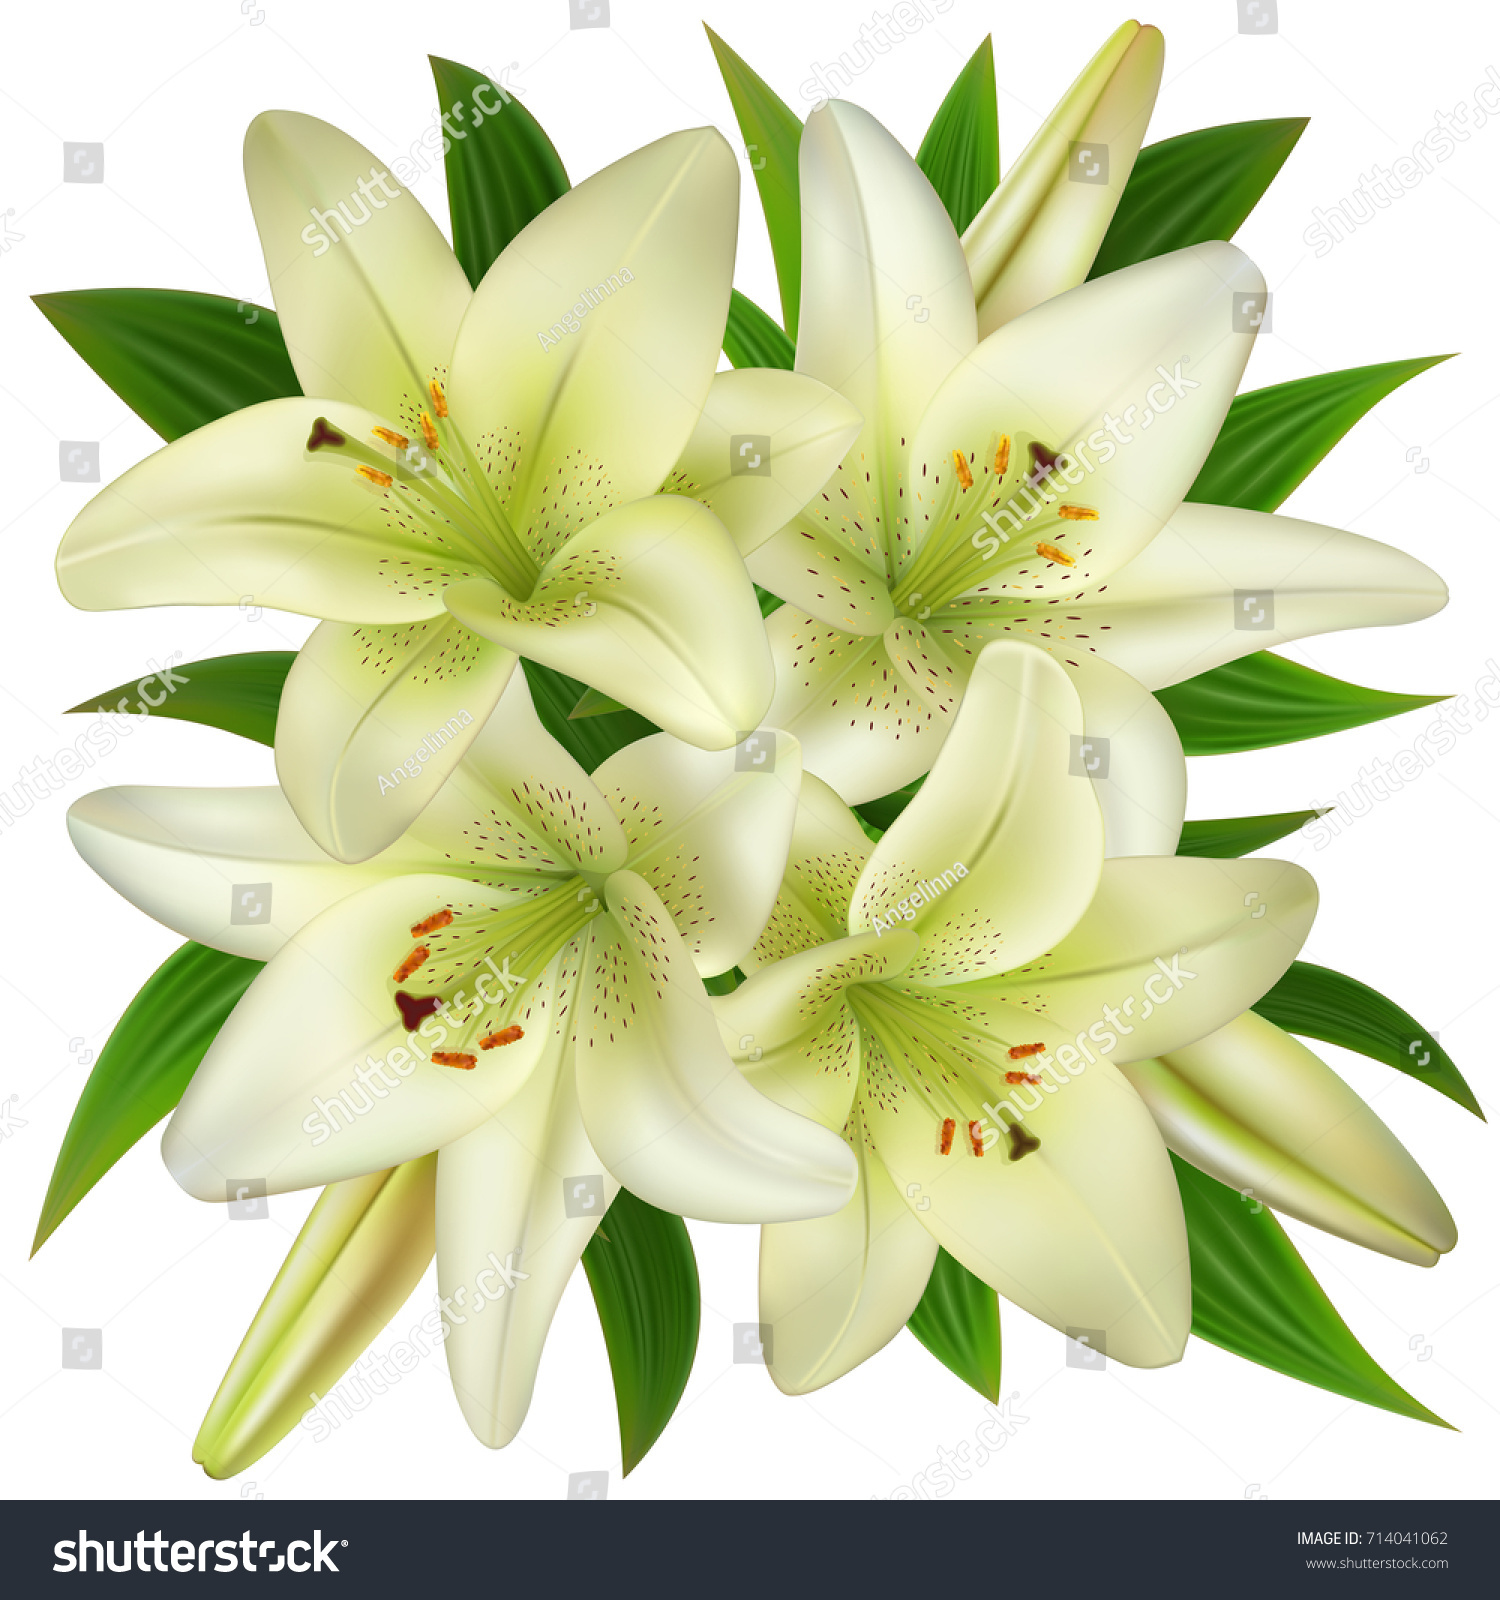 Illustration bouquet white lily flowers isolated stock vector illustration of bouquet from white lily flowers isolated izmirmasajfo